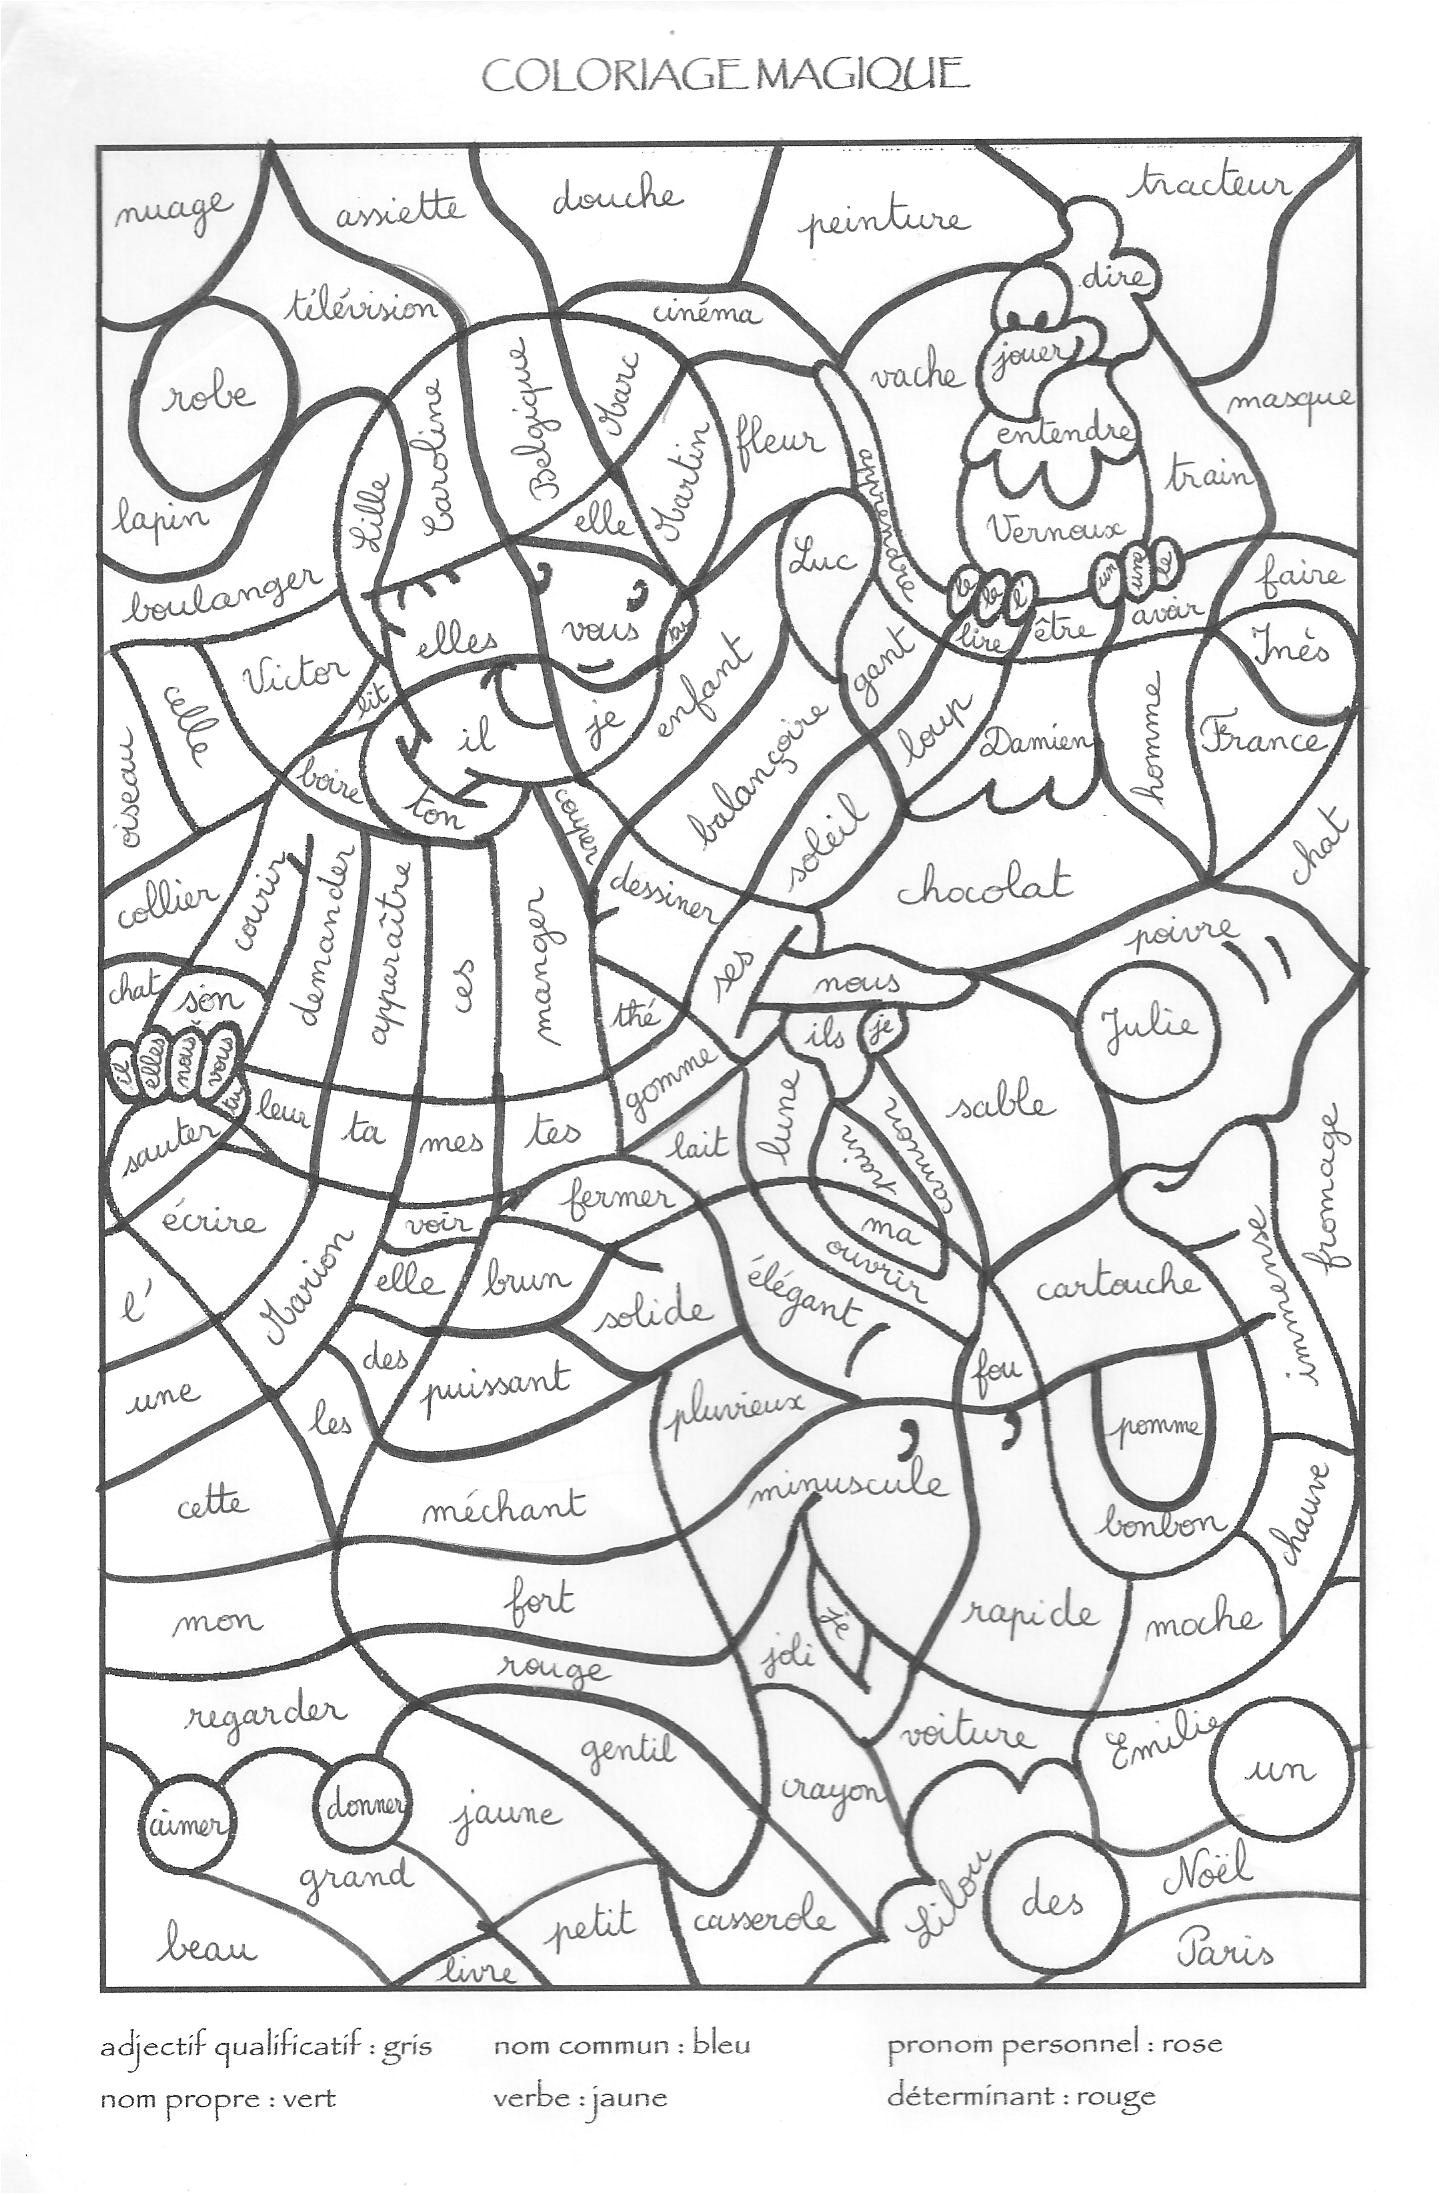 Coloriage En Anglais Ce1.Coloriage Magique Anglais Cycle 3 Teaching French French